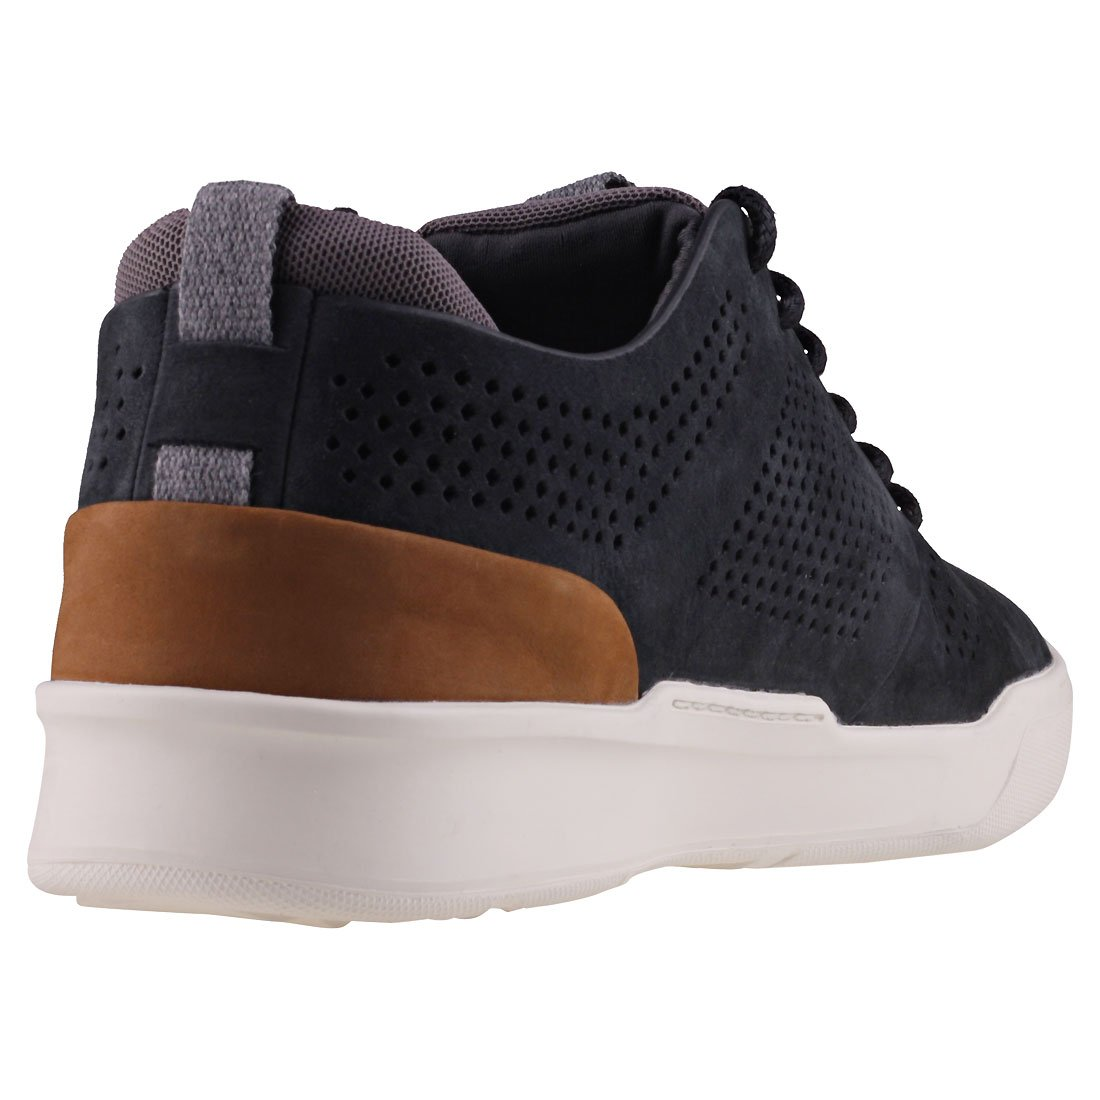 b49a6dccffdd2 Lacoste Explorateur Craft 118 1 Mens Trainers Black Grey - 11 UK   Amazon.co.uk  Shoes   Bags